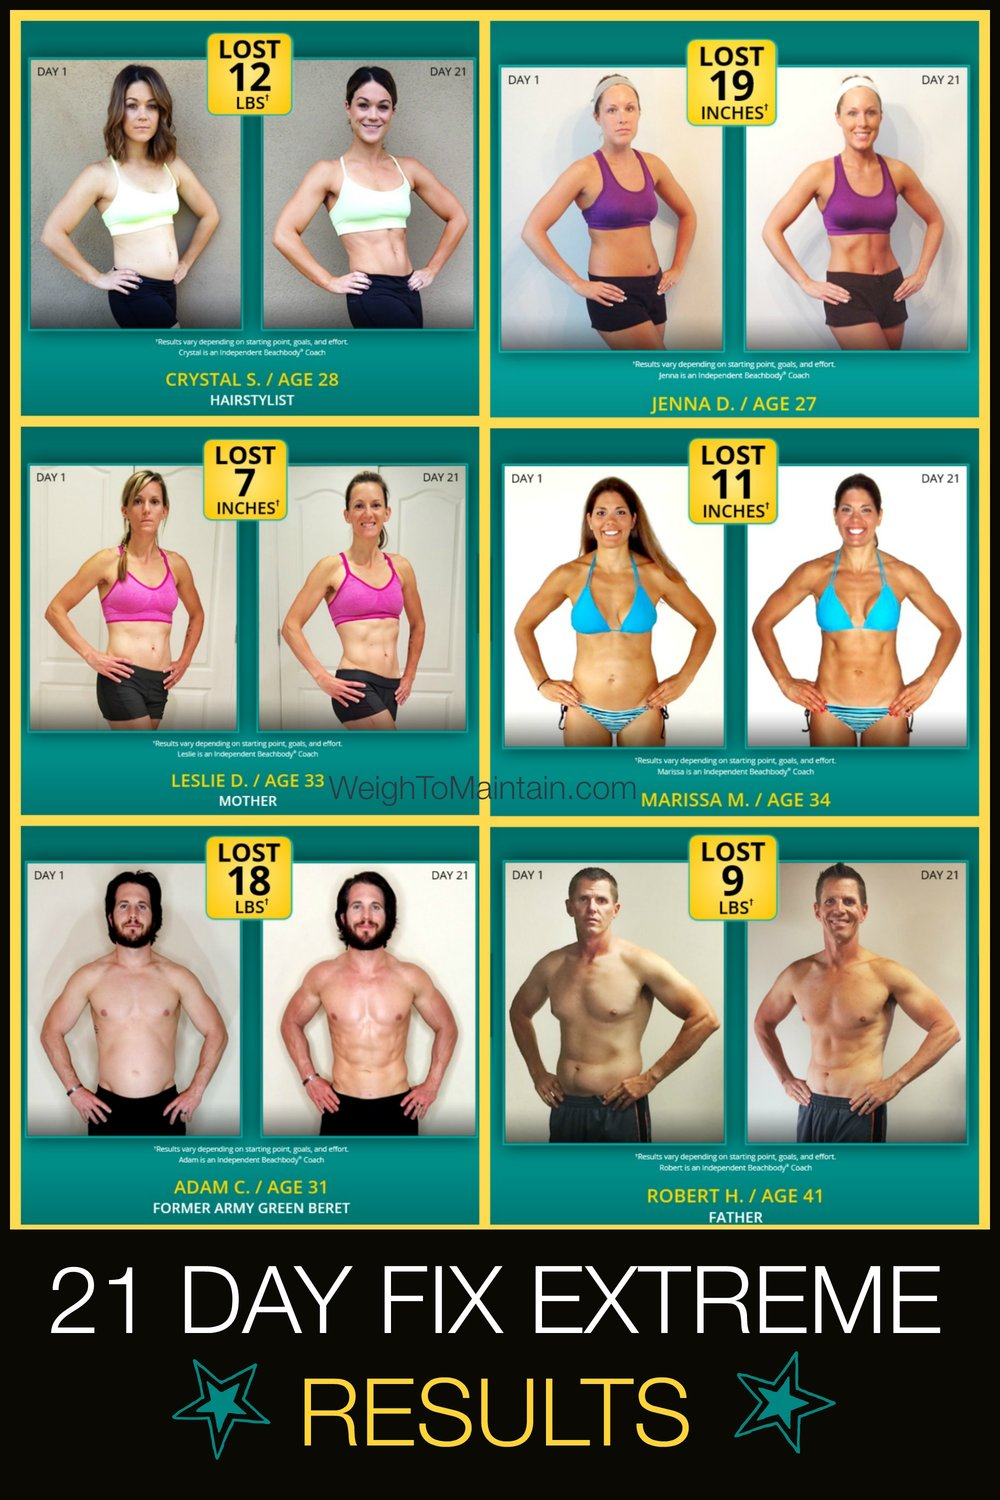 21-day-fix-extreme-results-weigh-to-maintain.jpg